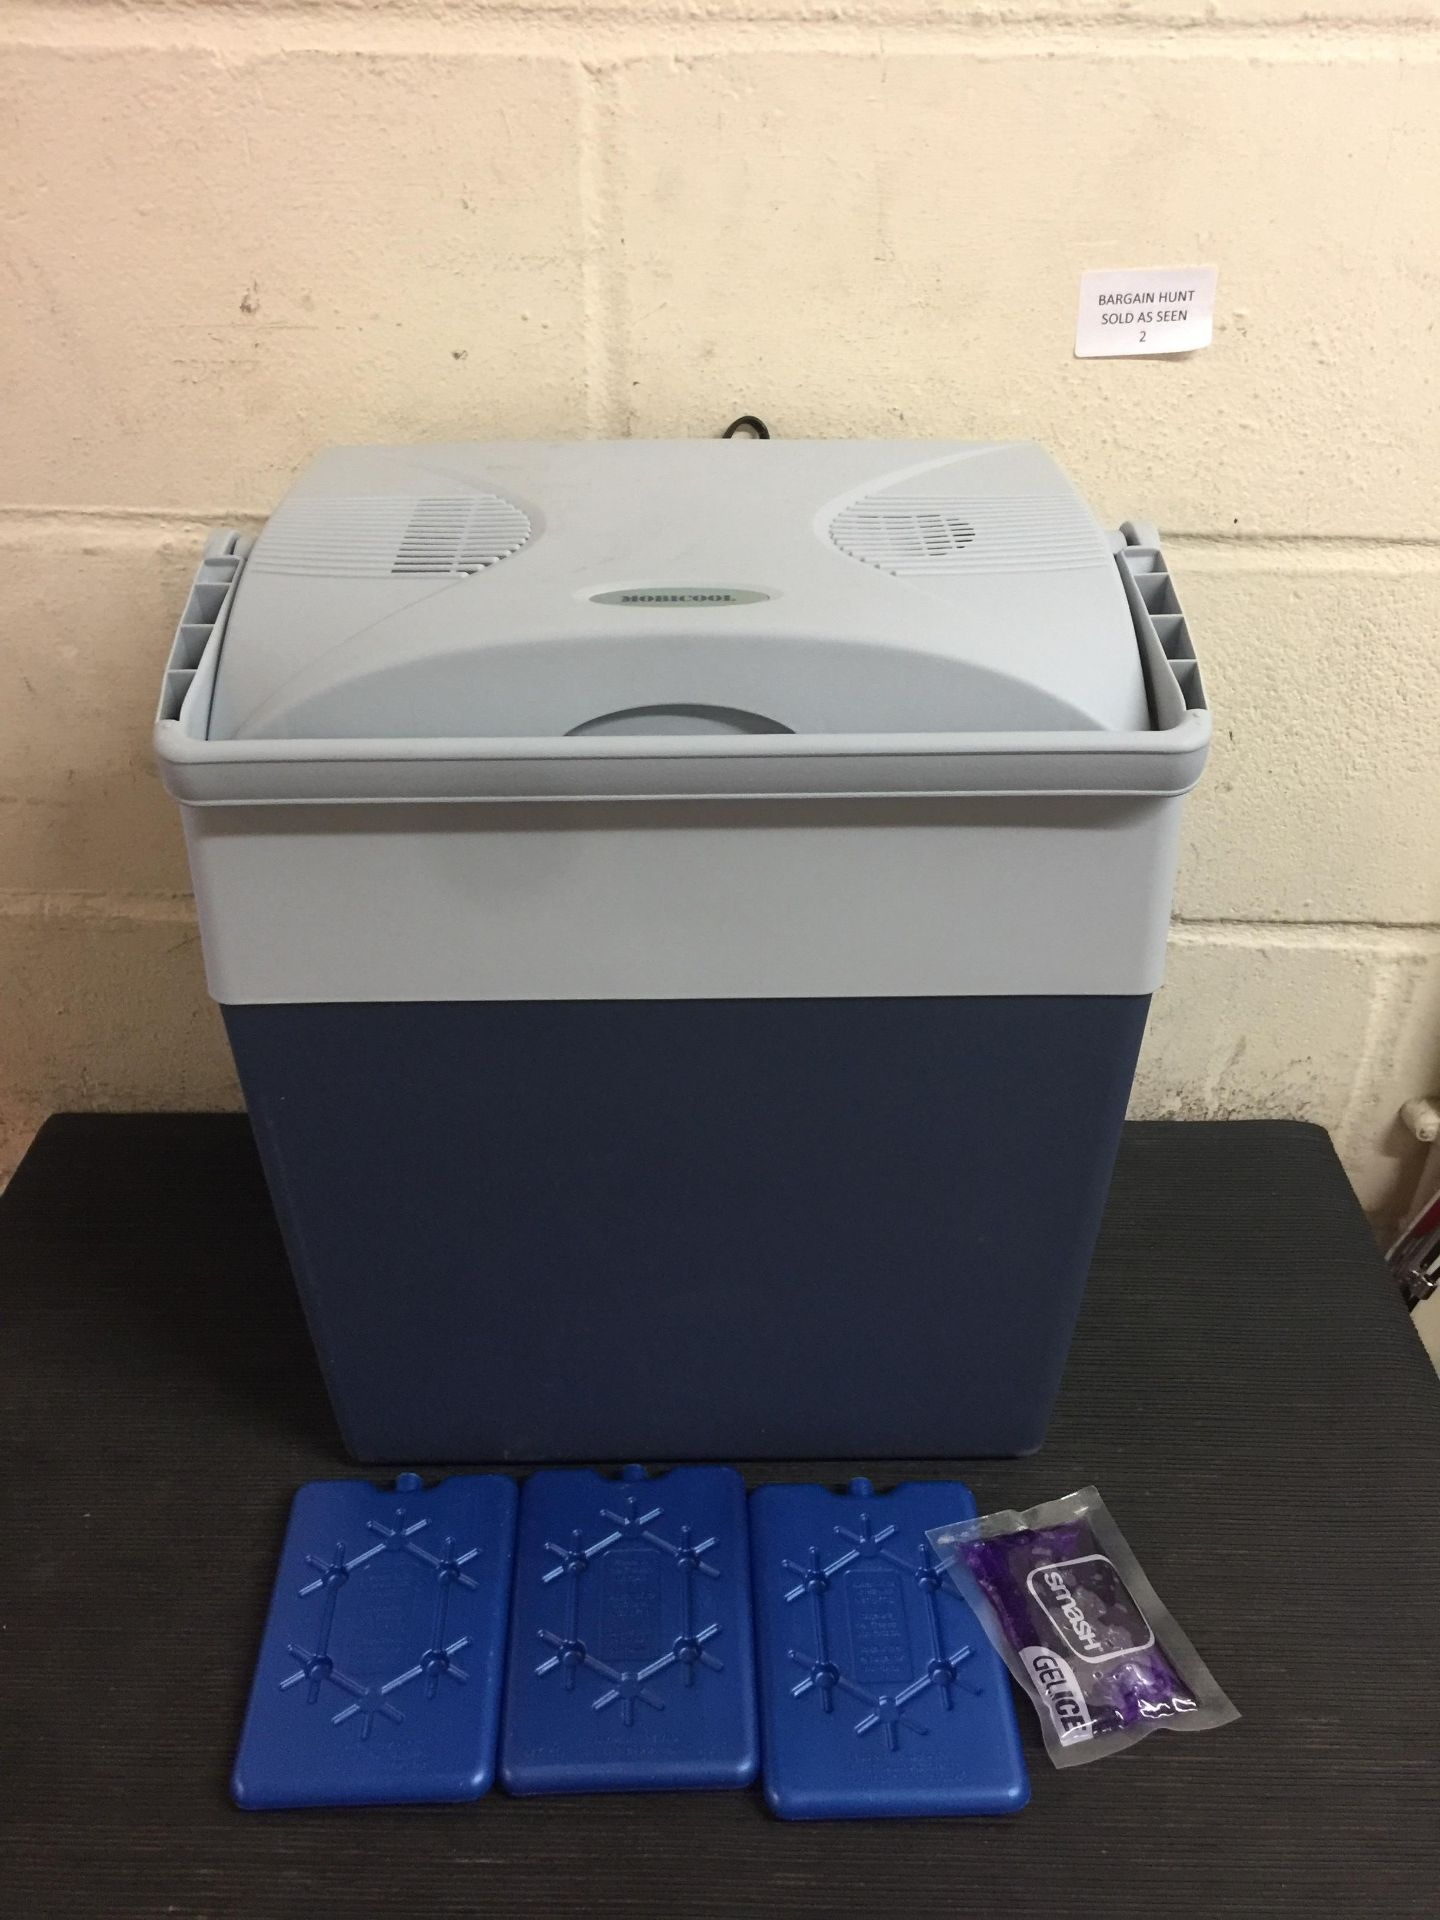 Lot 2 - Dometic Waeco Mobicool Electric Coolbox - Blue RRP £85